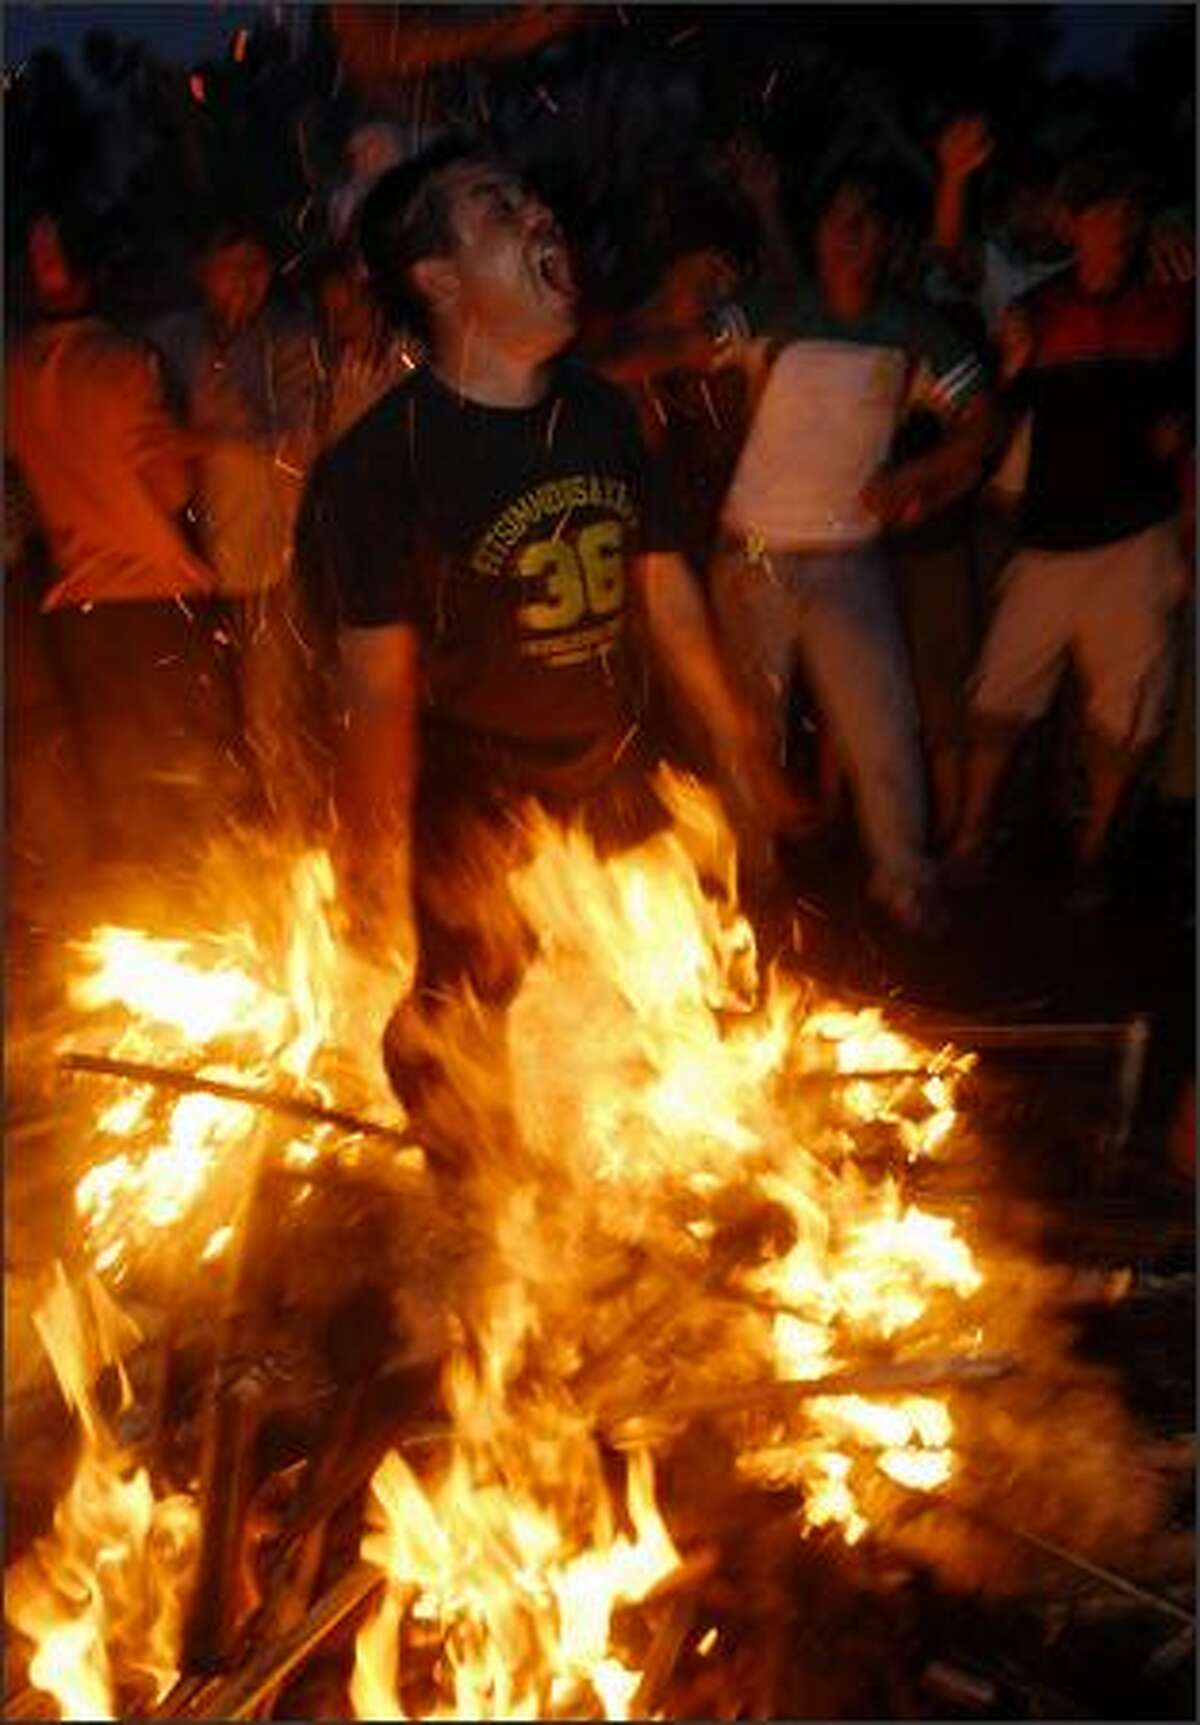 Nepalese students jump through a fire during a torch rally in Kathmandu in protest against vice president Parmananda Jha for taking the oath of office in the Hindi language. Students have been protesting against Jha for using the Hindi language during the swearing-in ceremony the previous week. The newly-republican Himalayan nation's Supreme Court ordered Parmananda Jha, who was sworn in last week, to explain his use of a foreign language.